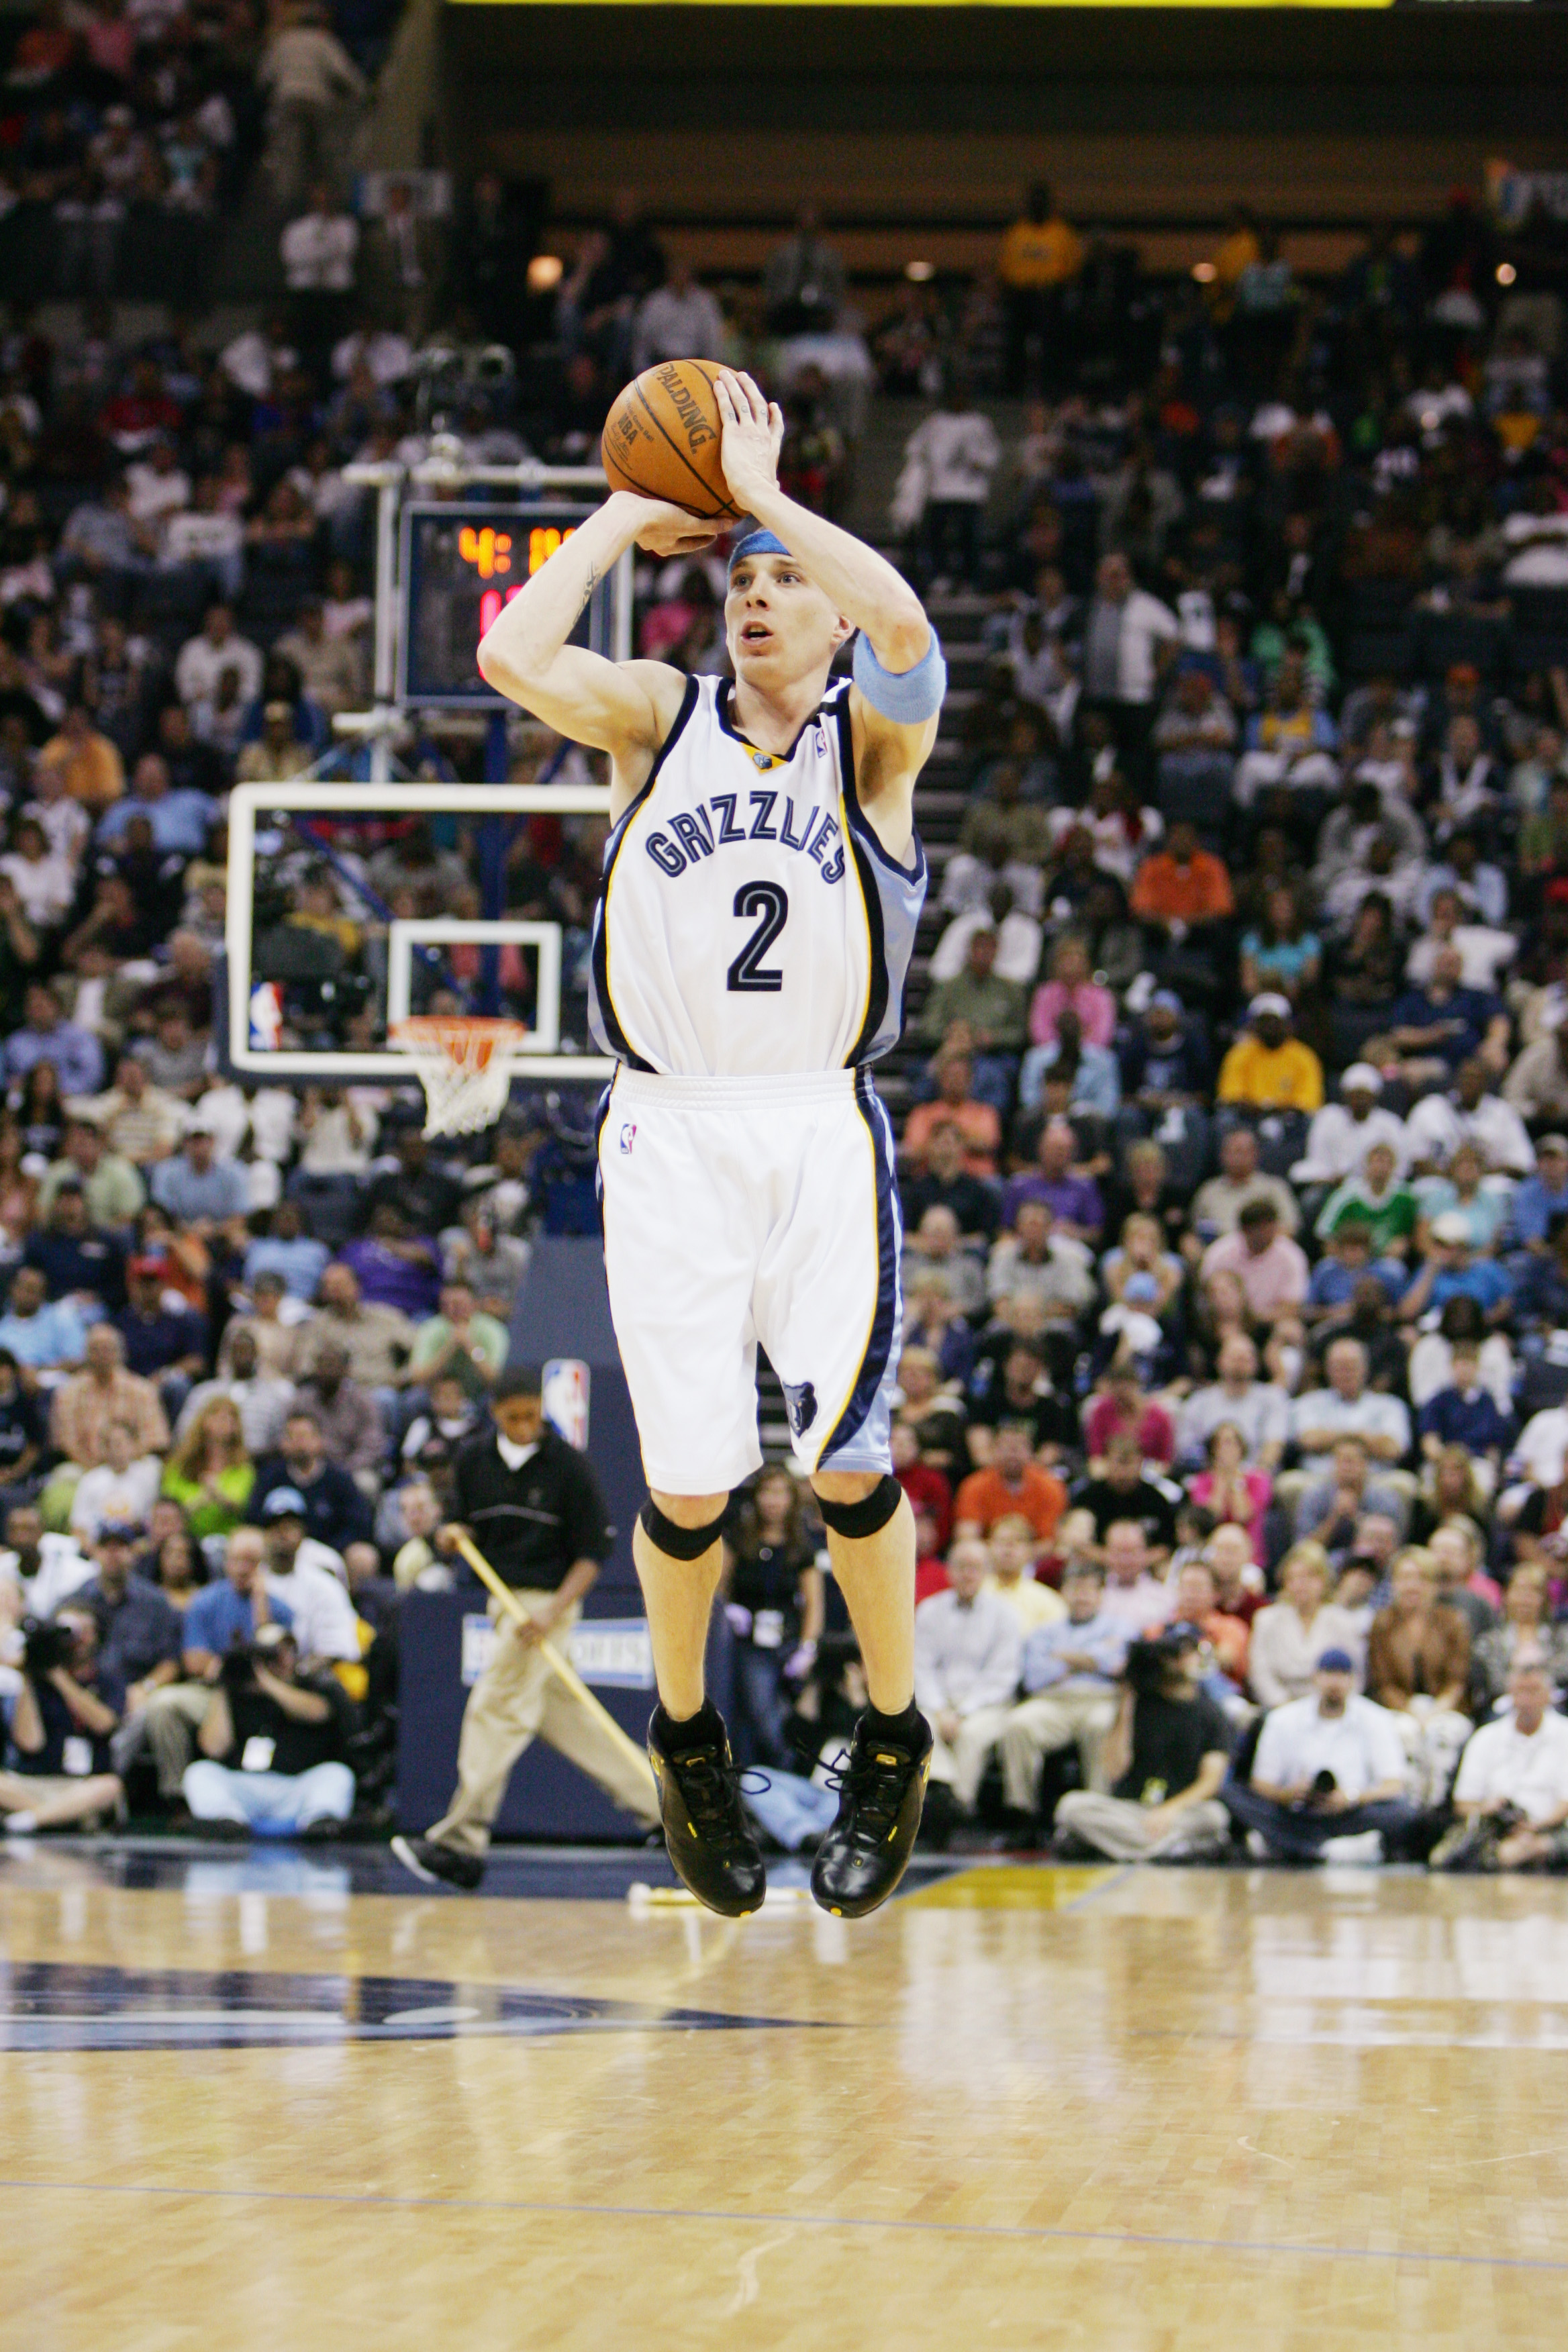 MEMPHIS, TN - MAY 1:  Jason Williams #2 of the Memphis Grizzlies shoots against the Phoenix Suns in Game four of the Western Conference Quarterfinals during the 2005 NBA Playoffs at the FedExForum on May 1, 2005 in Memphis, Tennessee. The Suns won 123-115